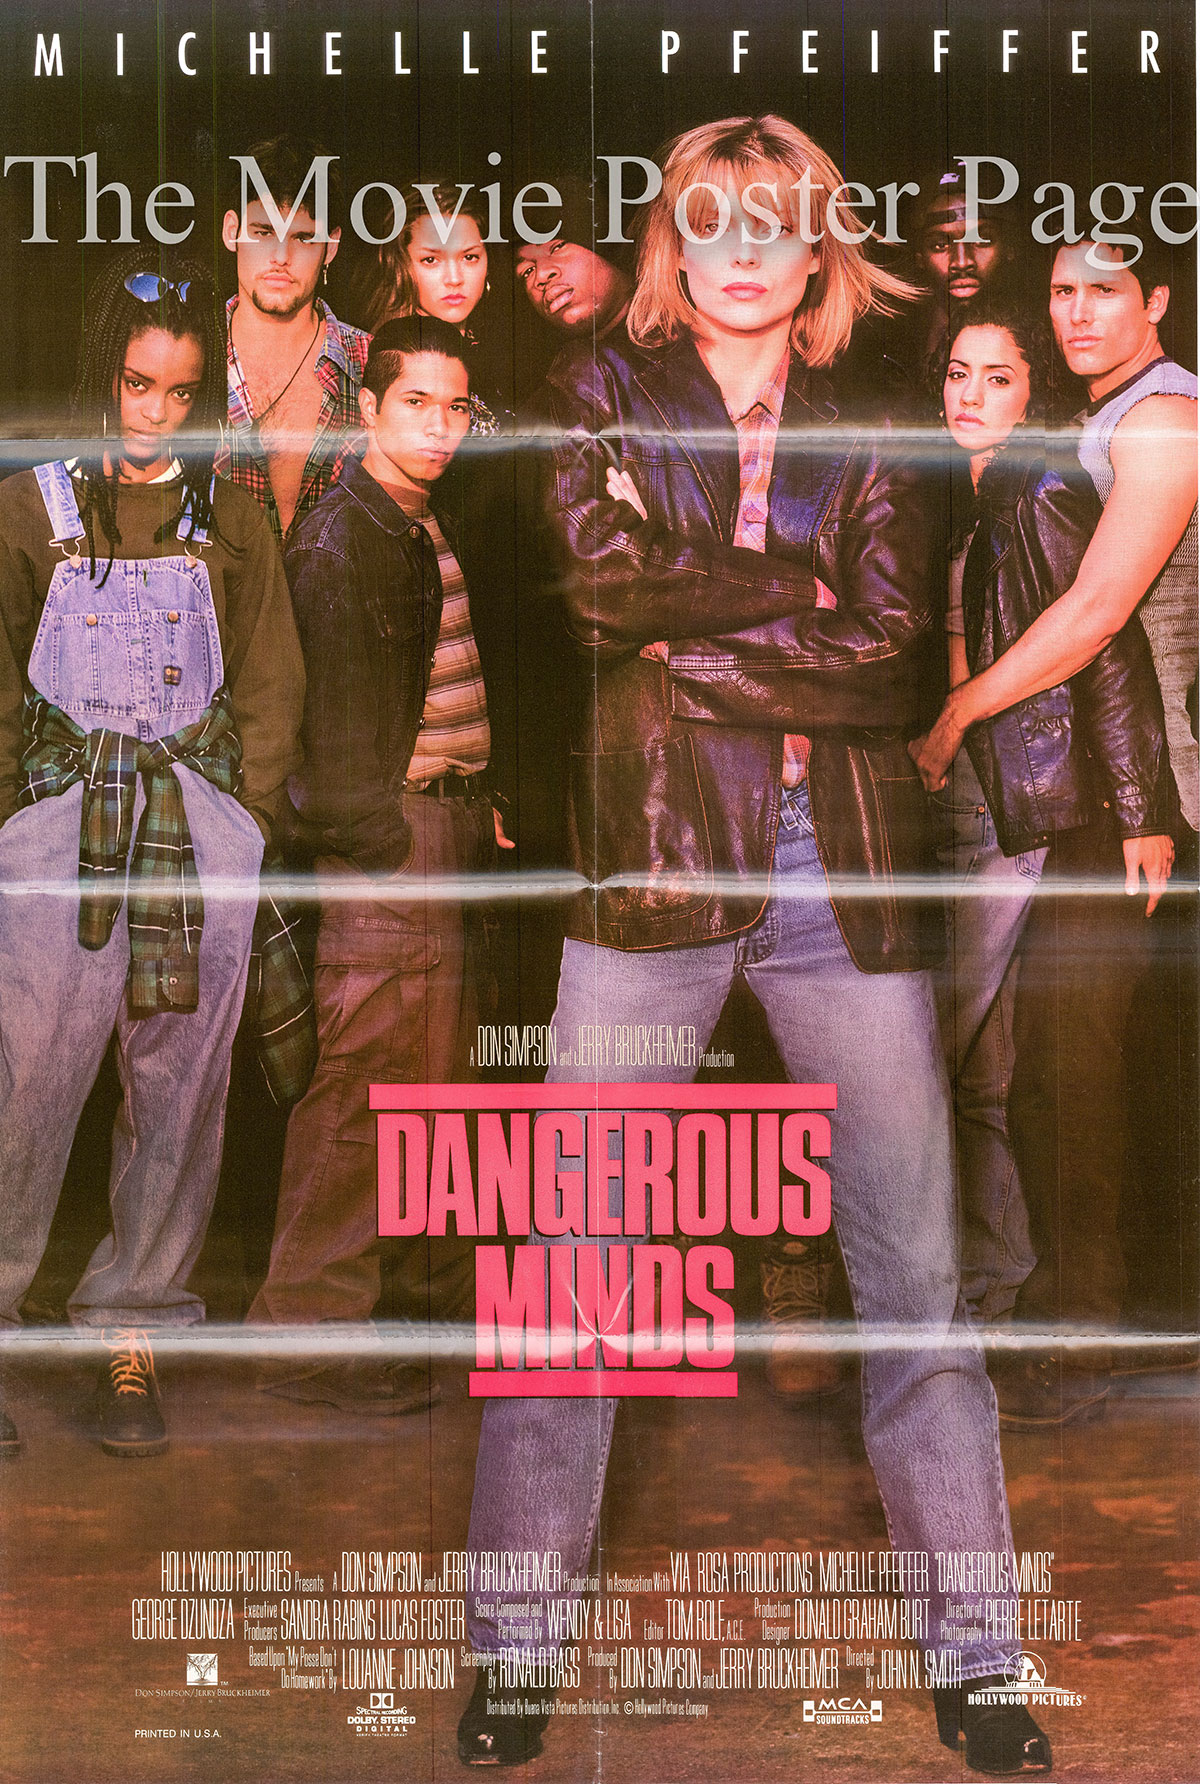 Pictured is a US one-sheet poster for the 1995 John N. Smith film Dangerous Minds starring Michelle Pfeiffer.